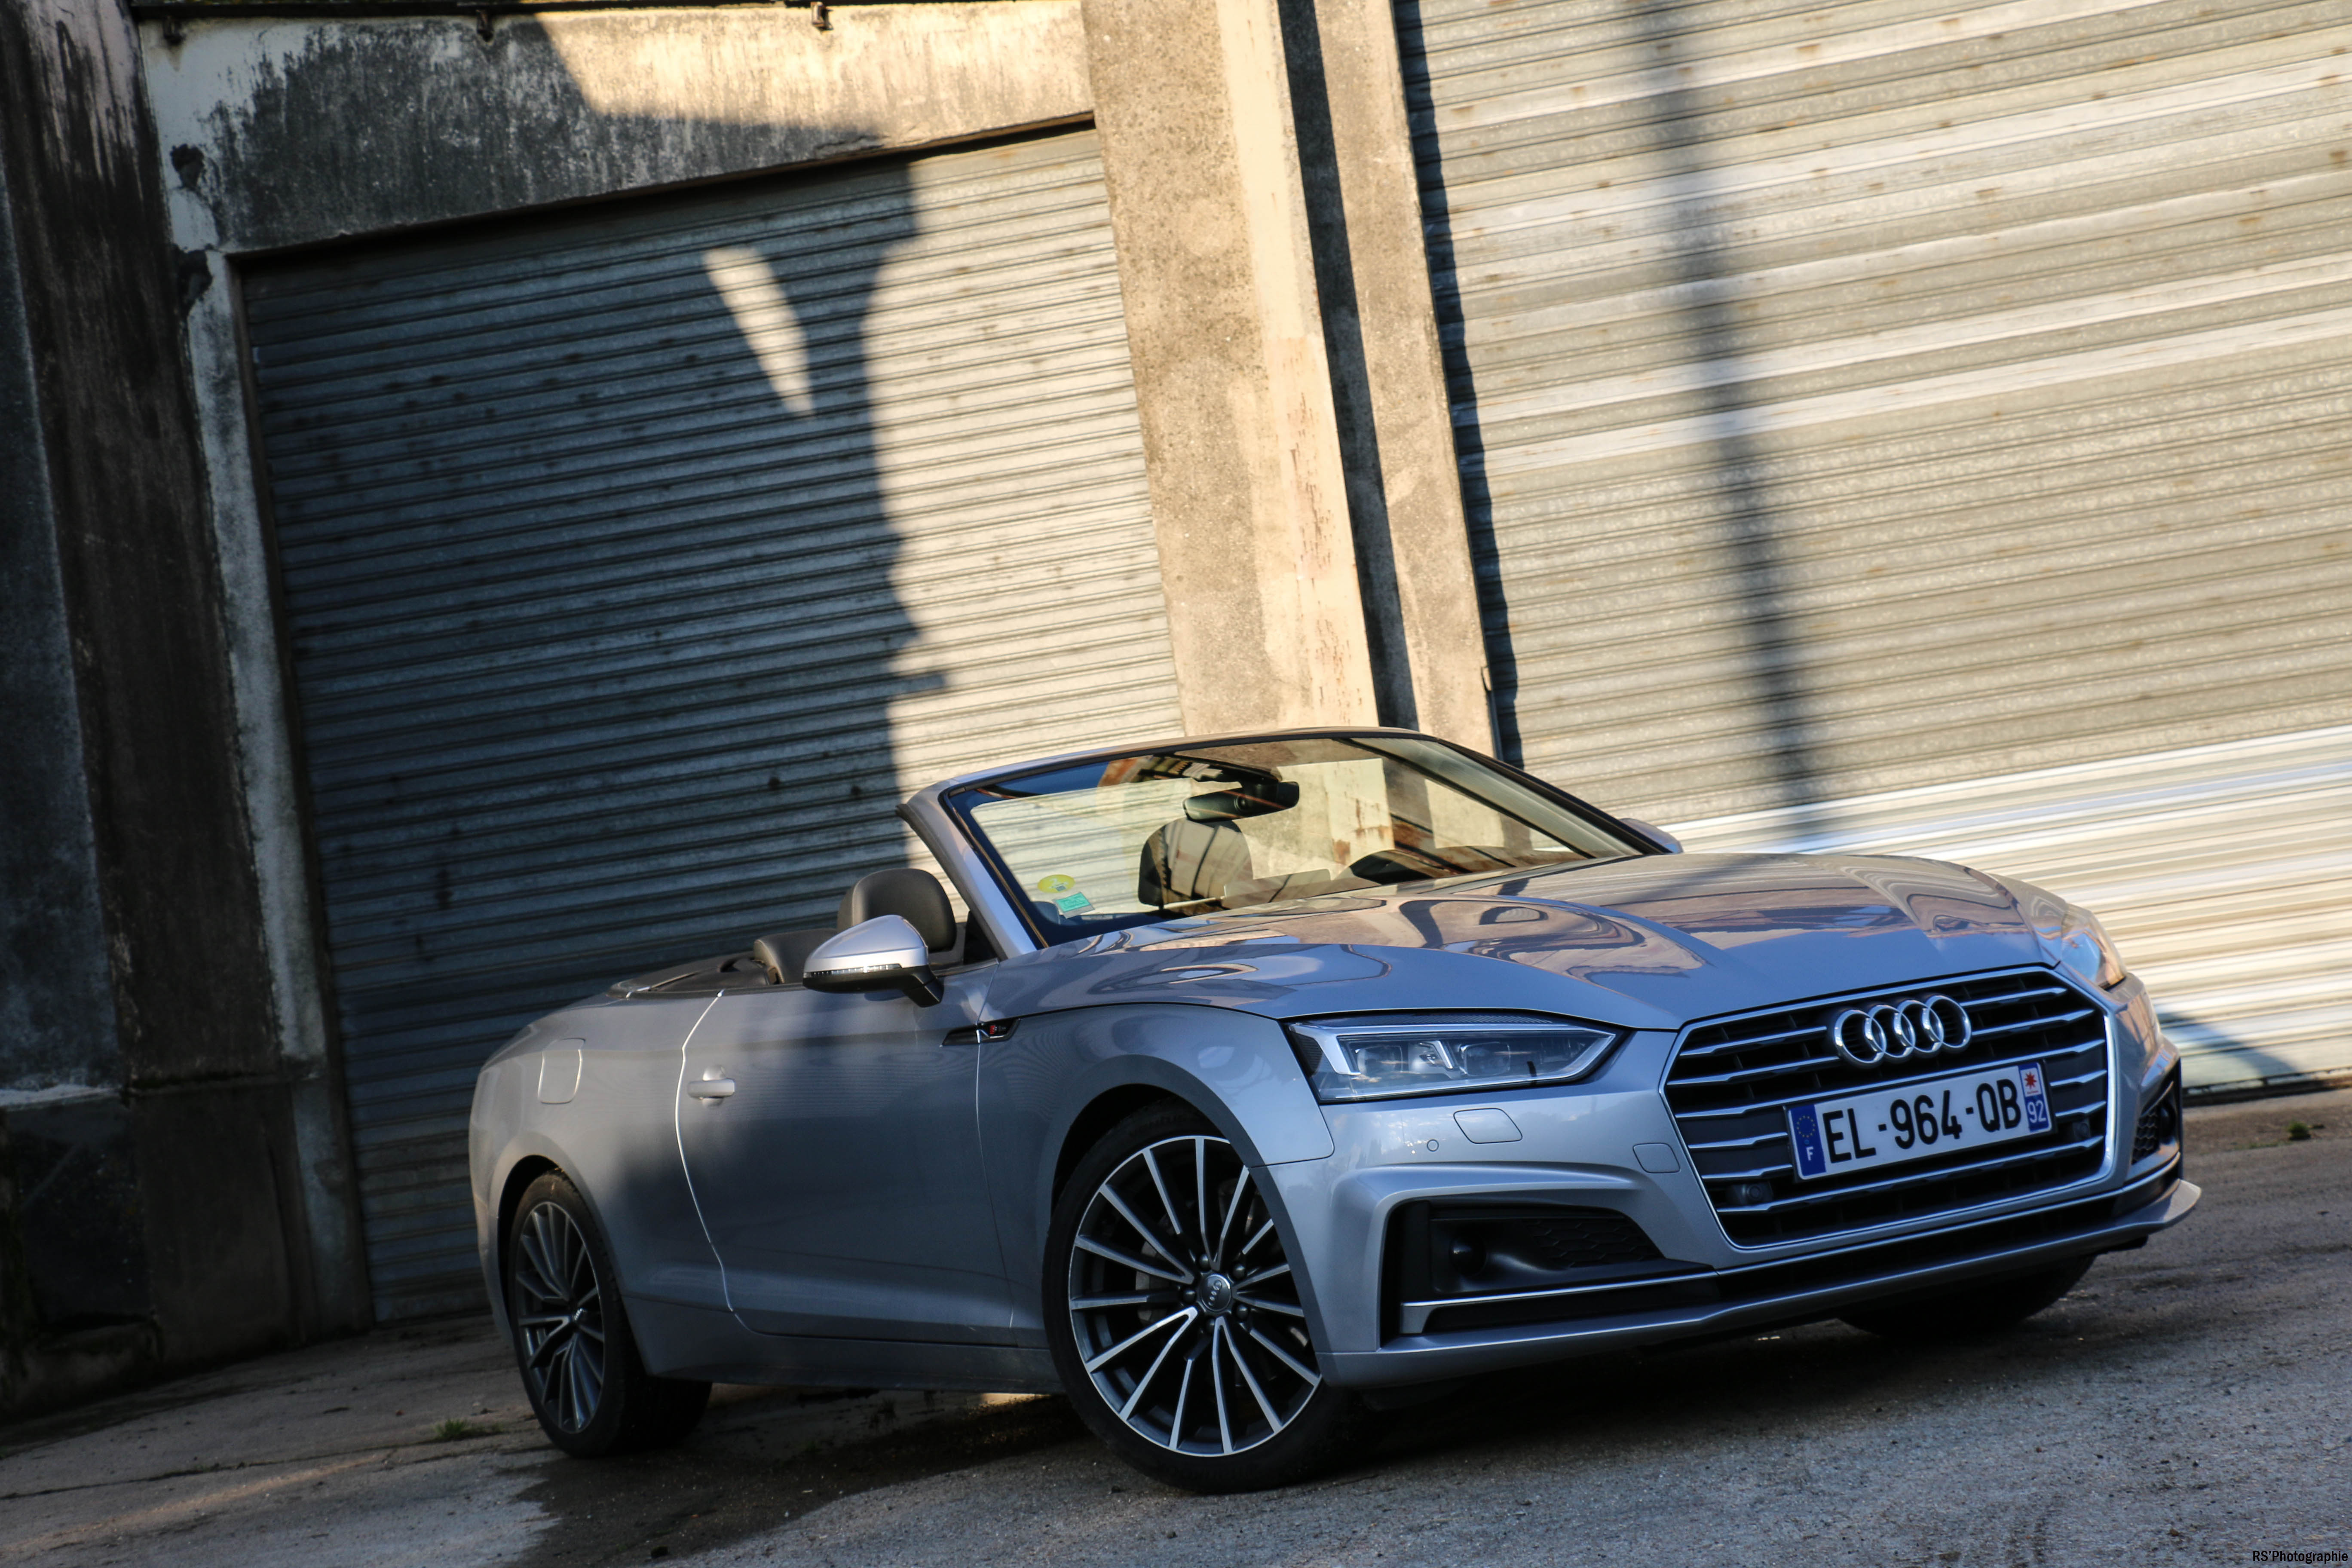 audia5cab42-audi-a5-190-tdi-cabriolet-avant-front-Arnaud Demasier-RSPhotographie